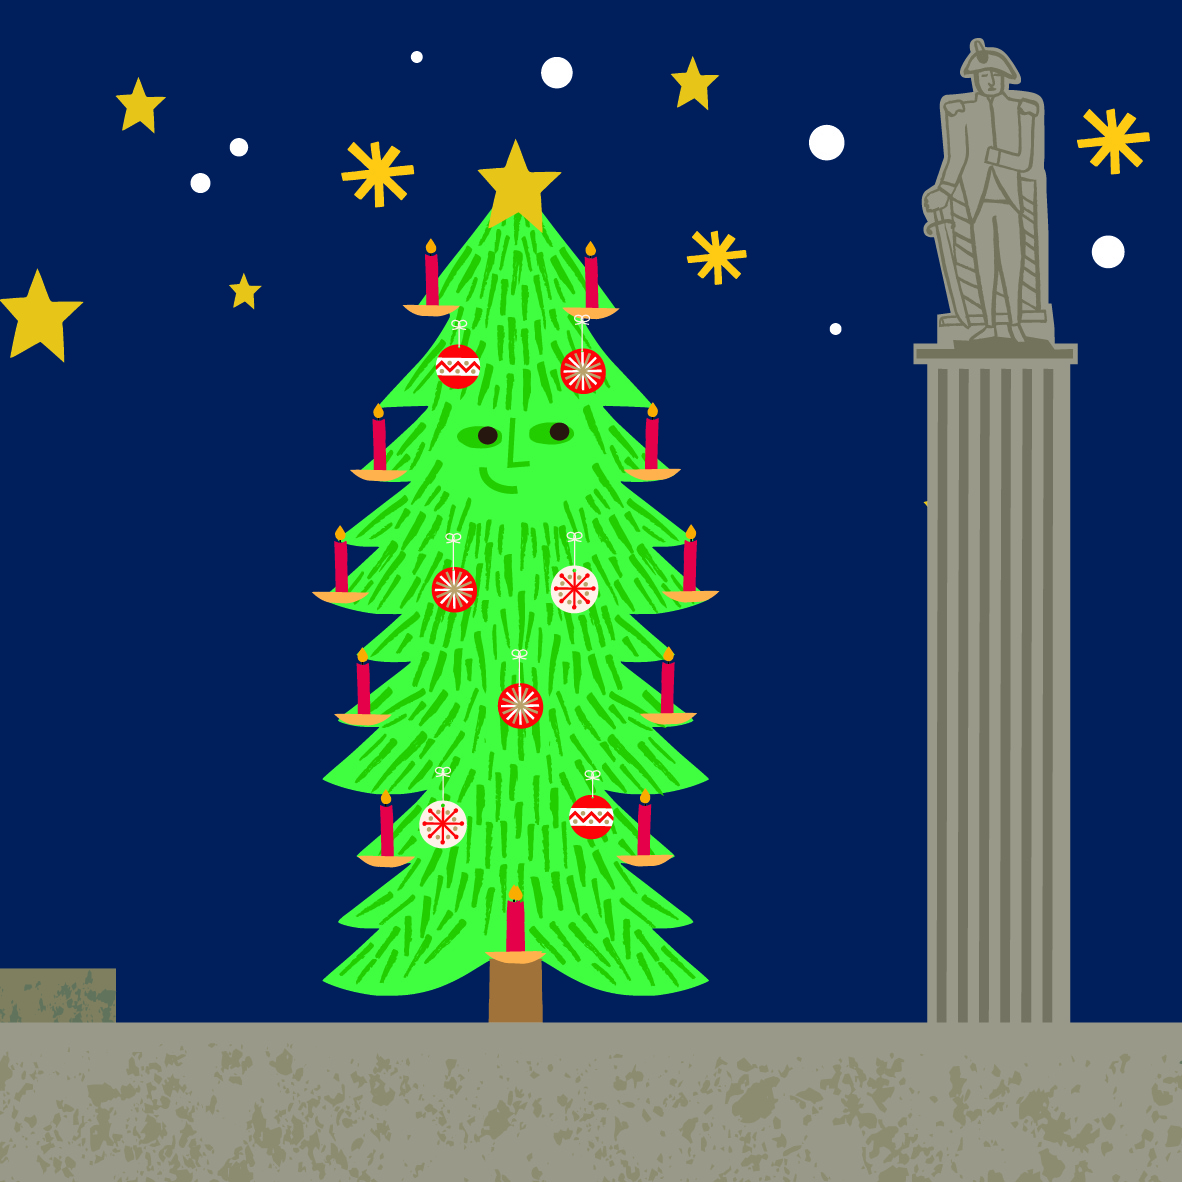 test Twitter Media - Read the new Christmas poem @poetrysociety by Julia Donaldson 'The Christmas Pine', unveiled at this year's Trafalgar Square lighting up of the Christmas Tree event @CityWestminster  https://t.co/iOgFrtIuQo https://t.co/CIvOlSrebQ